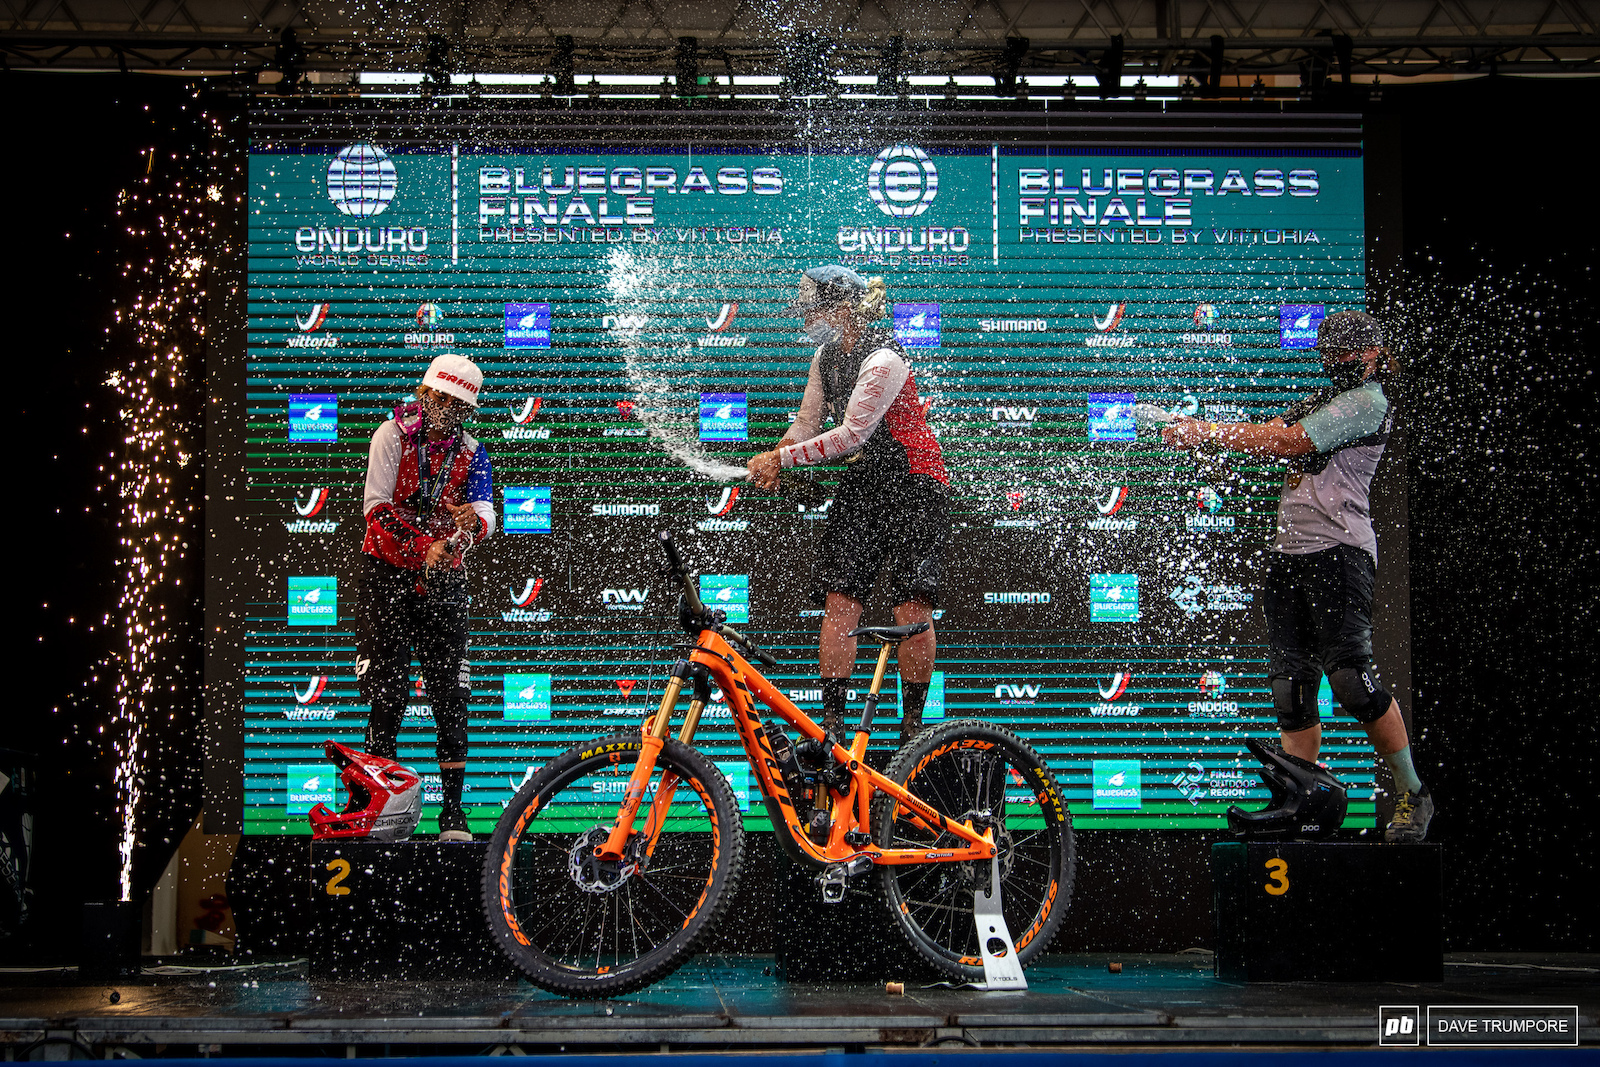 After a handful of podiums Morgane Charre took her first win of the year ahead of Isabeau Courdurier and Bex Baraona